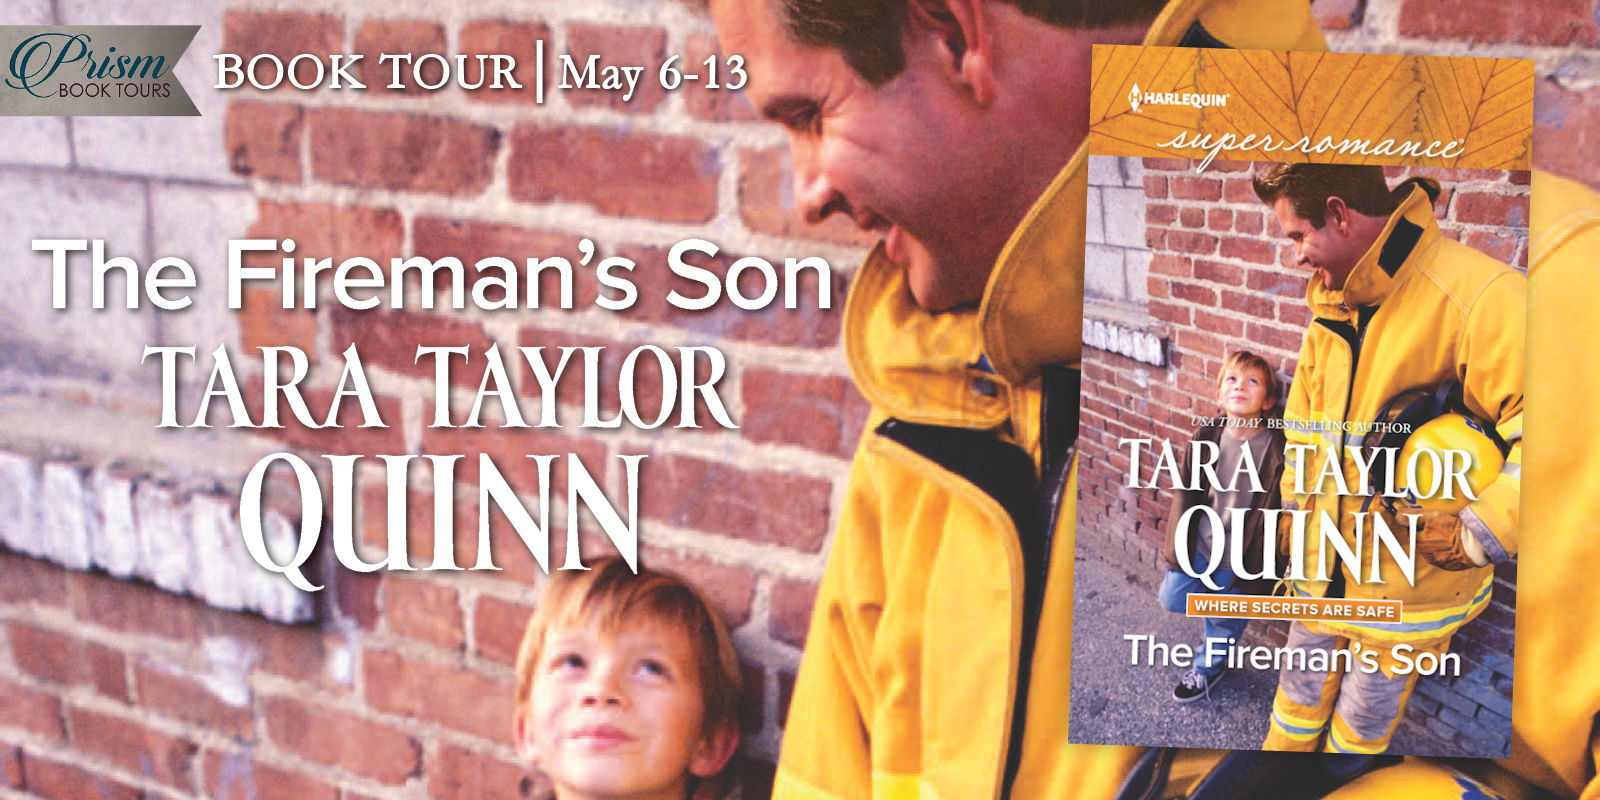 We're launching the Book Tour for THE FIREMAN'S SON by TARA TAYLOR QUINN!